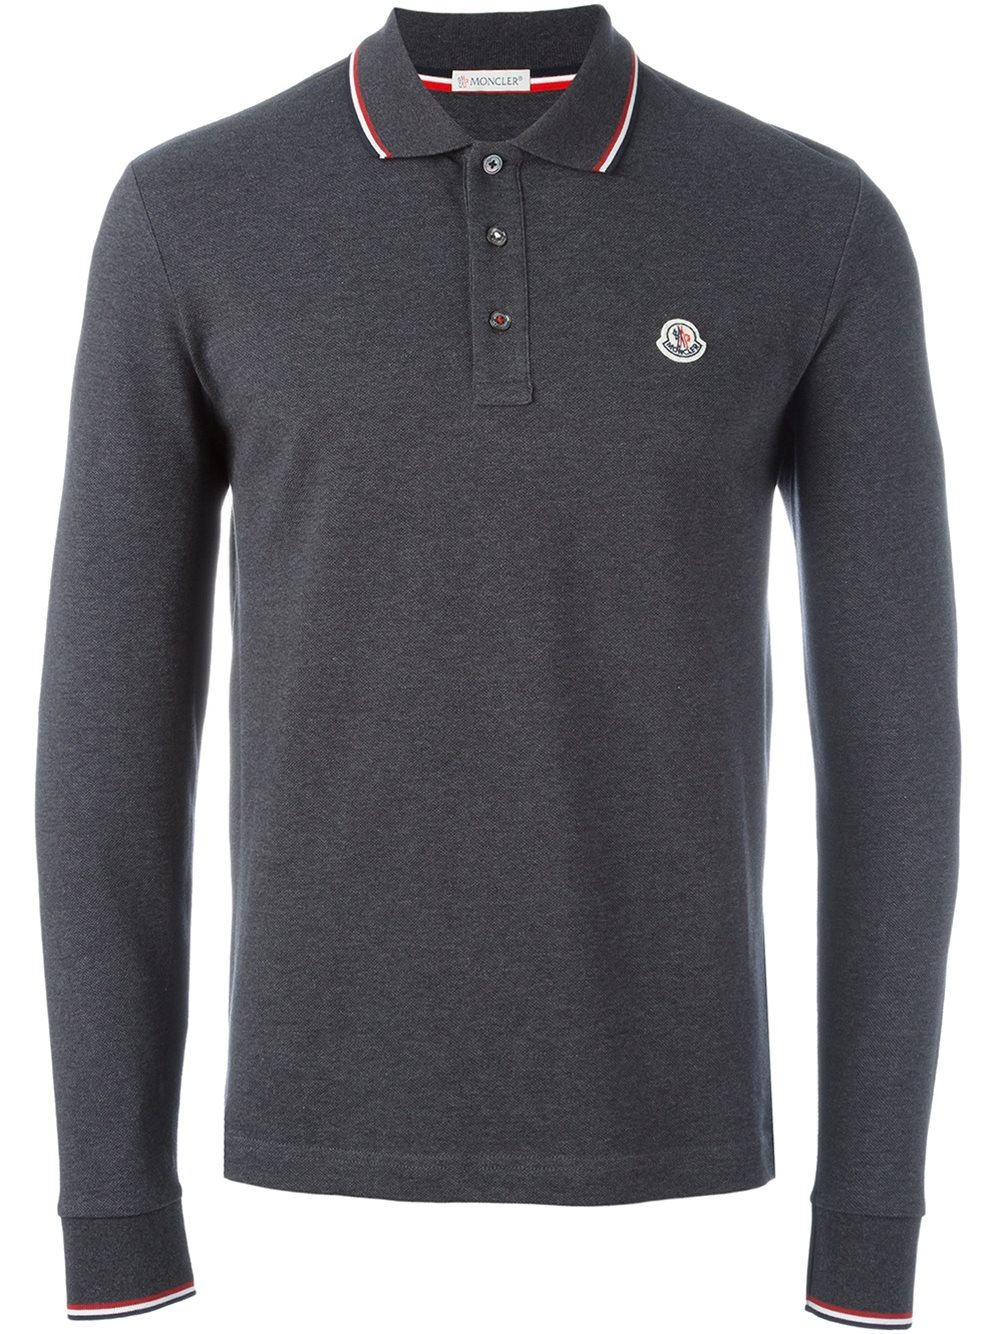 moncler long sleeve polo shirt in gray for men lyst. Black Bedroom Furniture Sets. Home Design Ideas